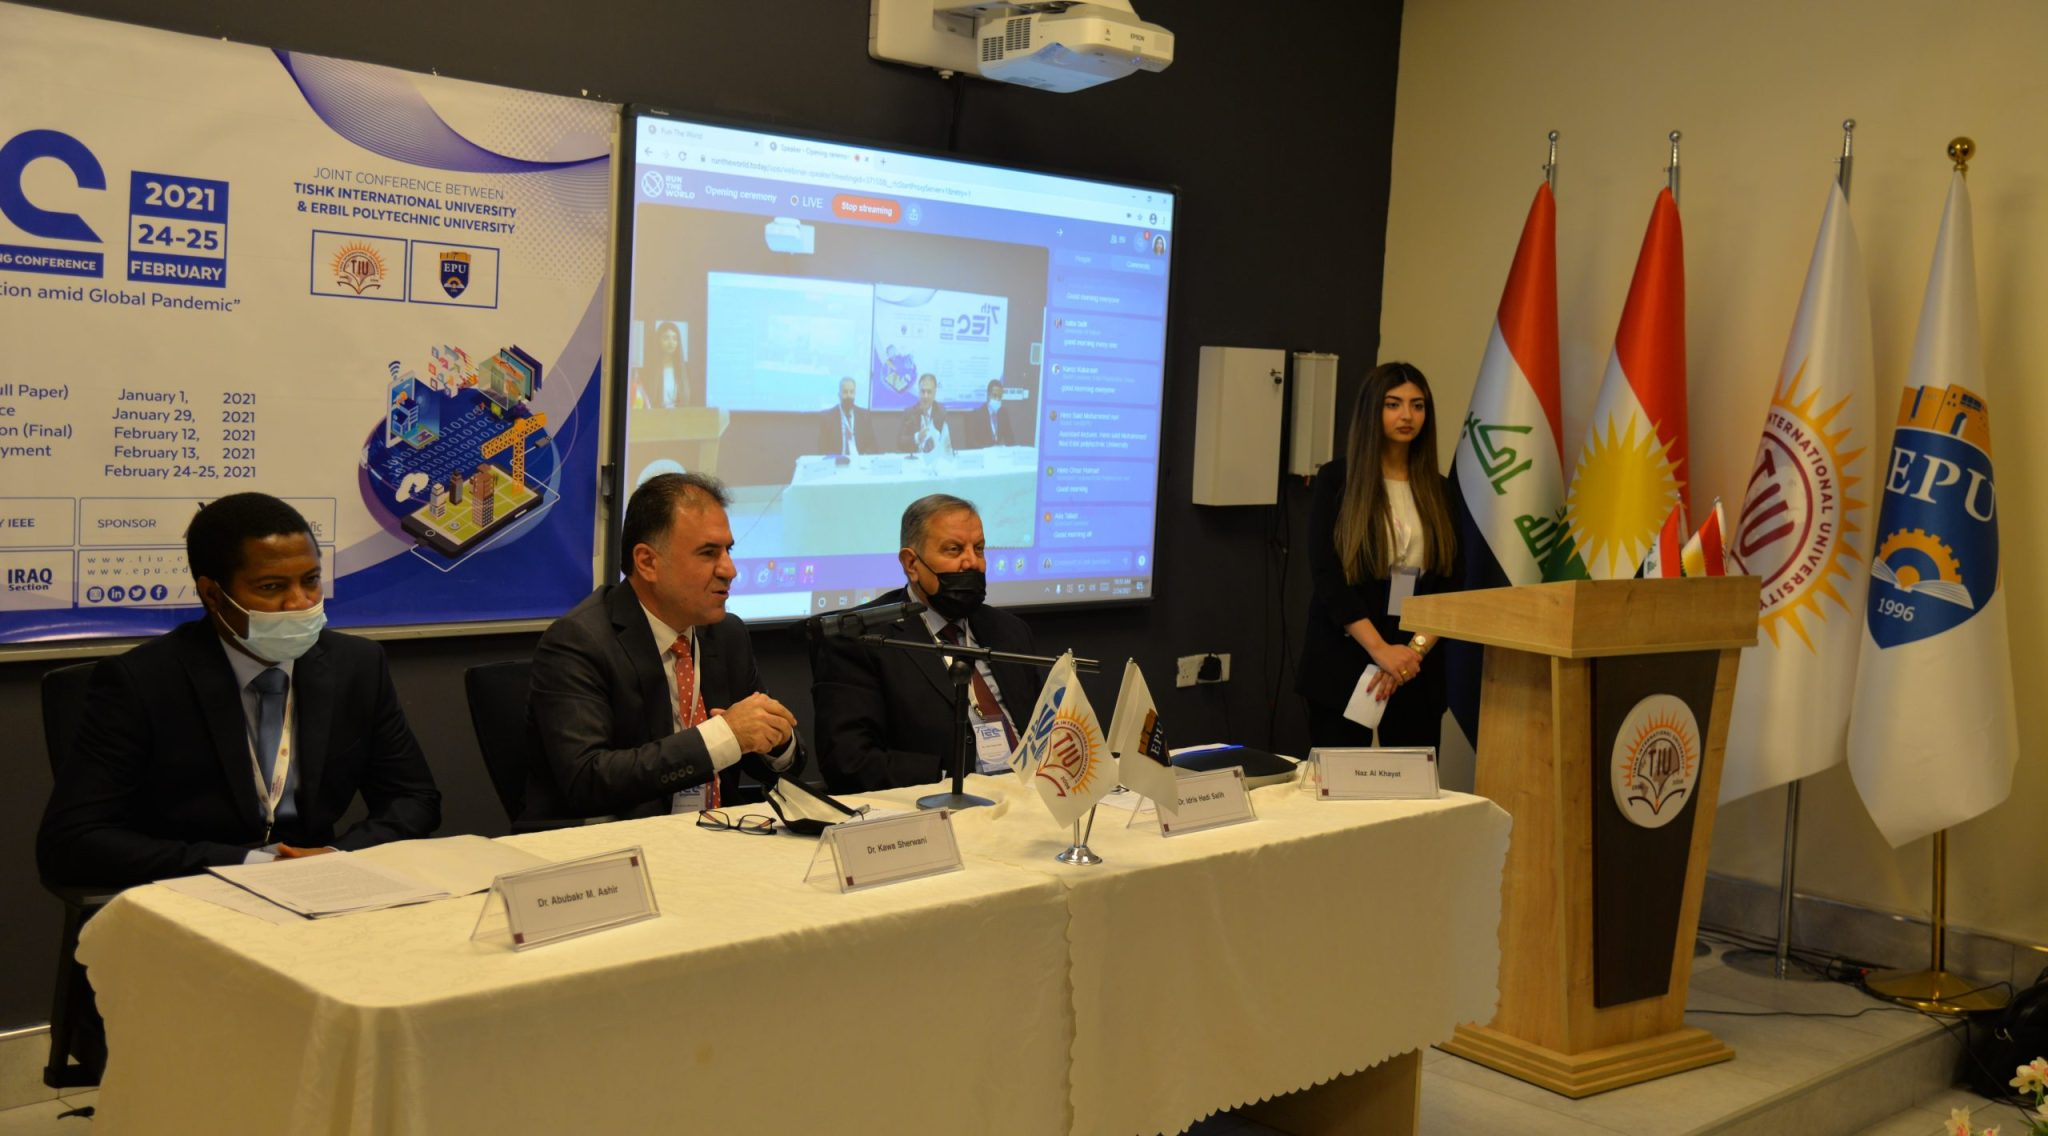 7th International Conference Has Been Held Between Erbil Polytechnic University And TISHK International University